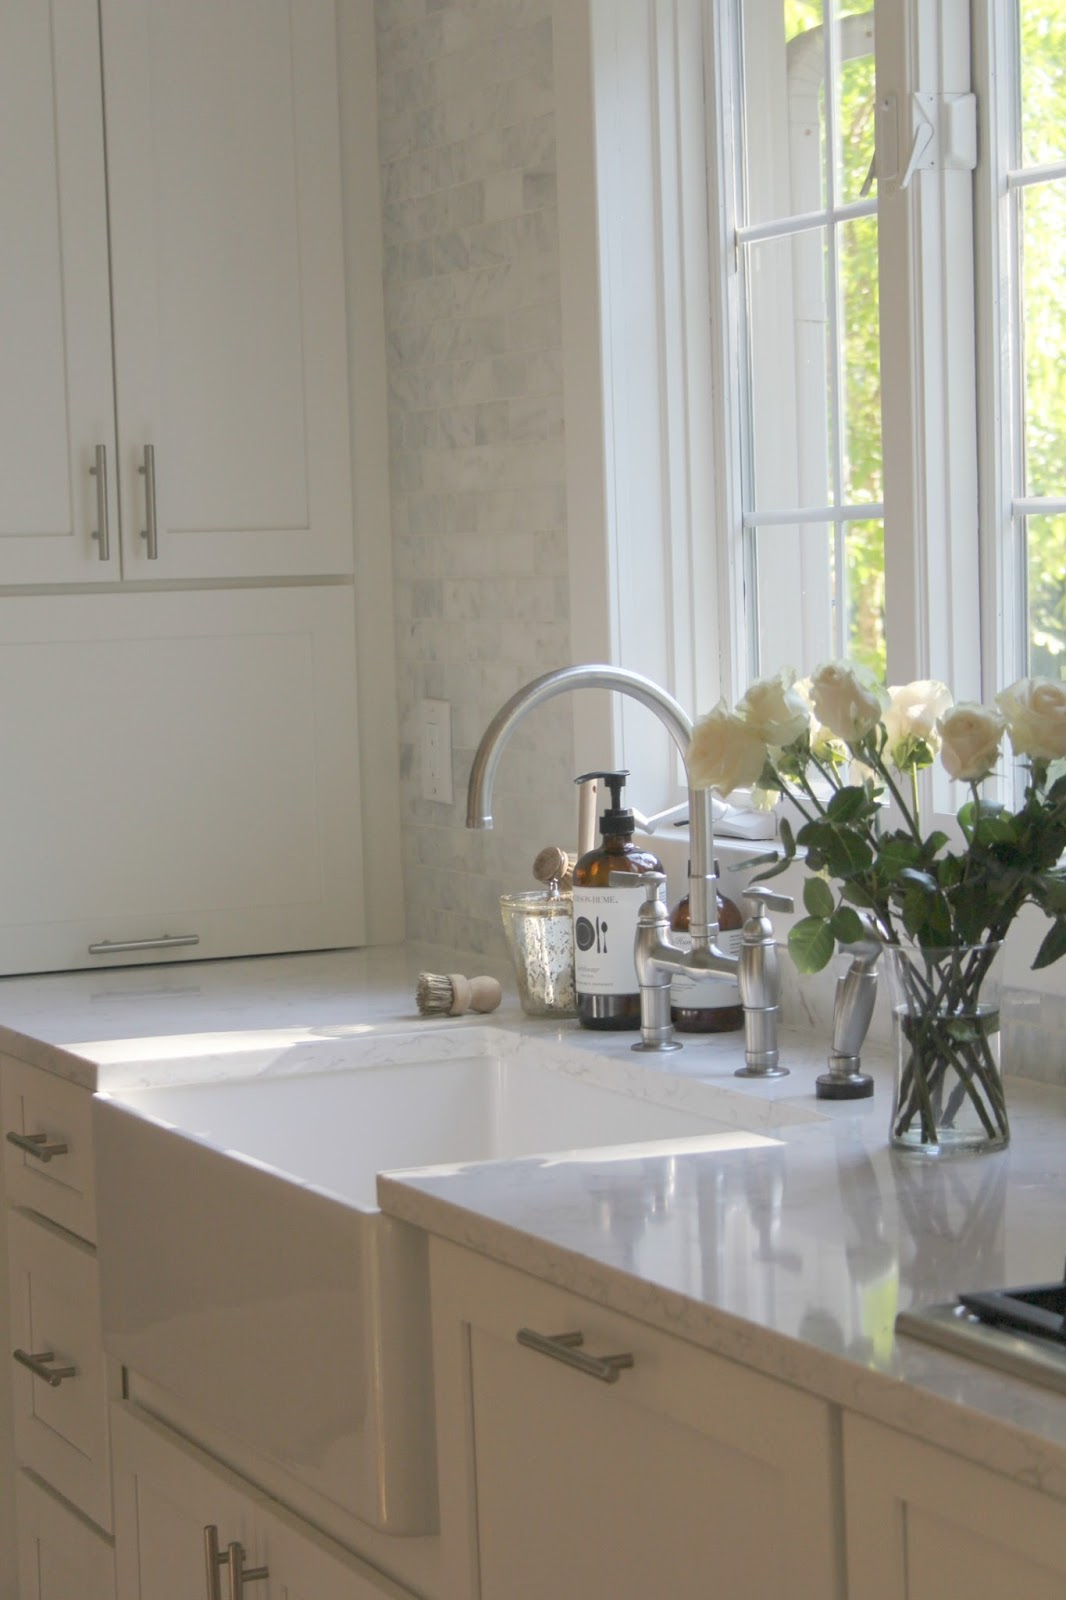 How to Choose the Right White Quartz for Kitchen Countertops – o Ideas For Kitchen Counter Tops Tile on tile countertop ideas, kitchen bar top ideas, small kitchen counter ideas, kitchen counter decorating ideas, kitchen floor tile patterns, kitchen counter designs, kitchen tile backsplash, kitchen island designs, top kitchen cabinet ideas, mosaic tile ideas, kitchen tile floors with maple cabinets, kitchen tile designs,